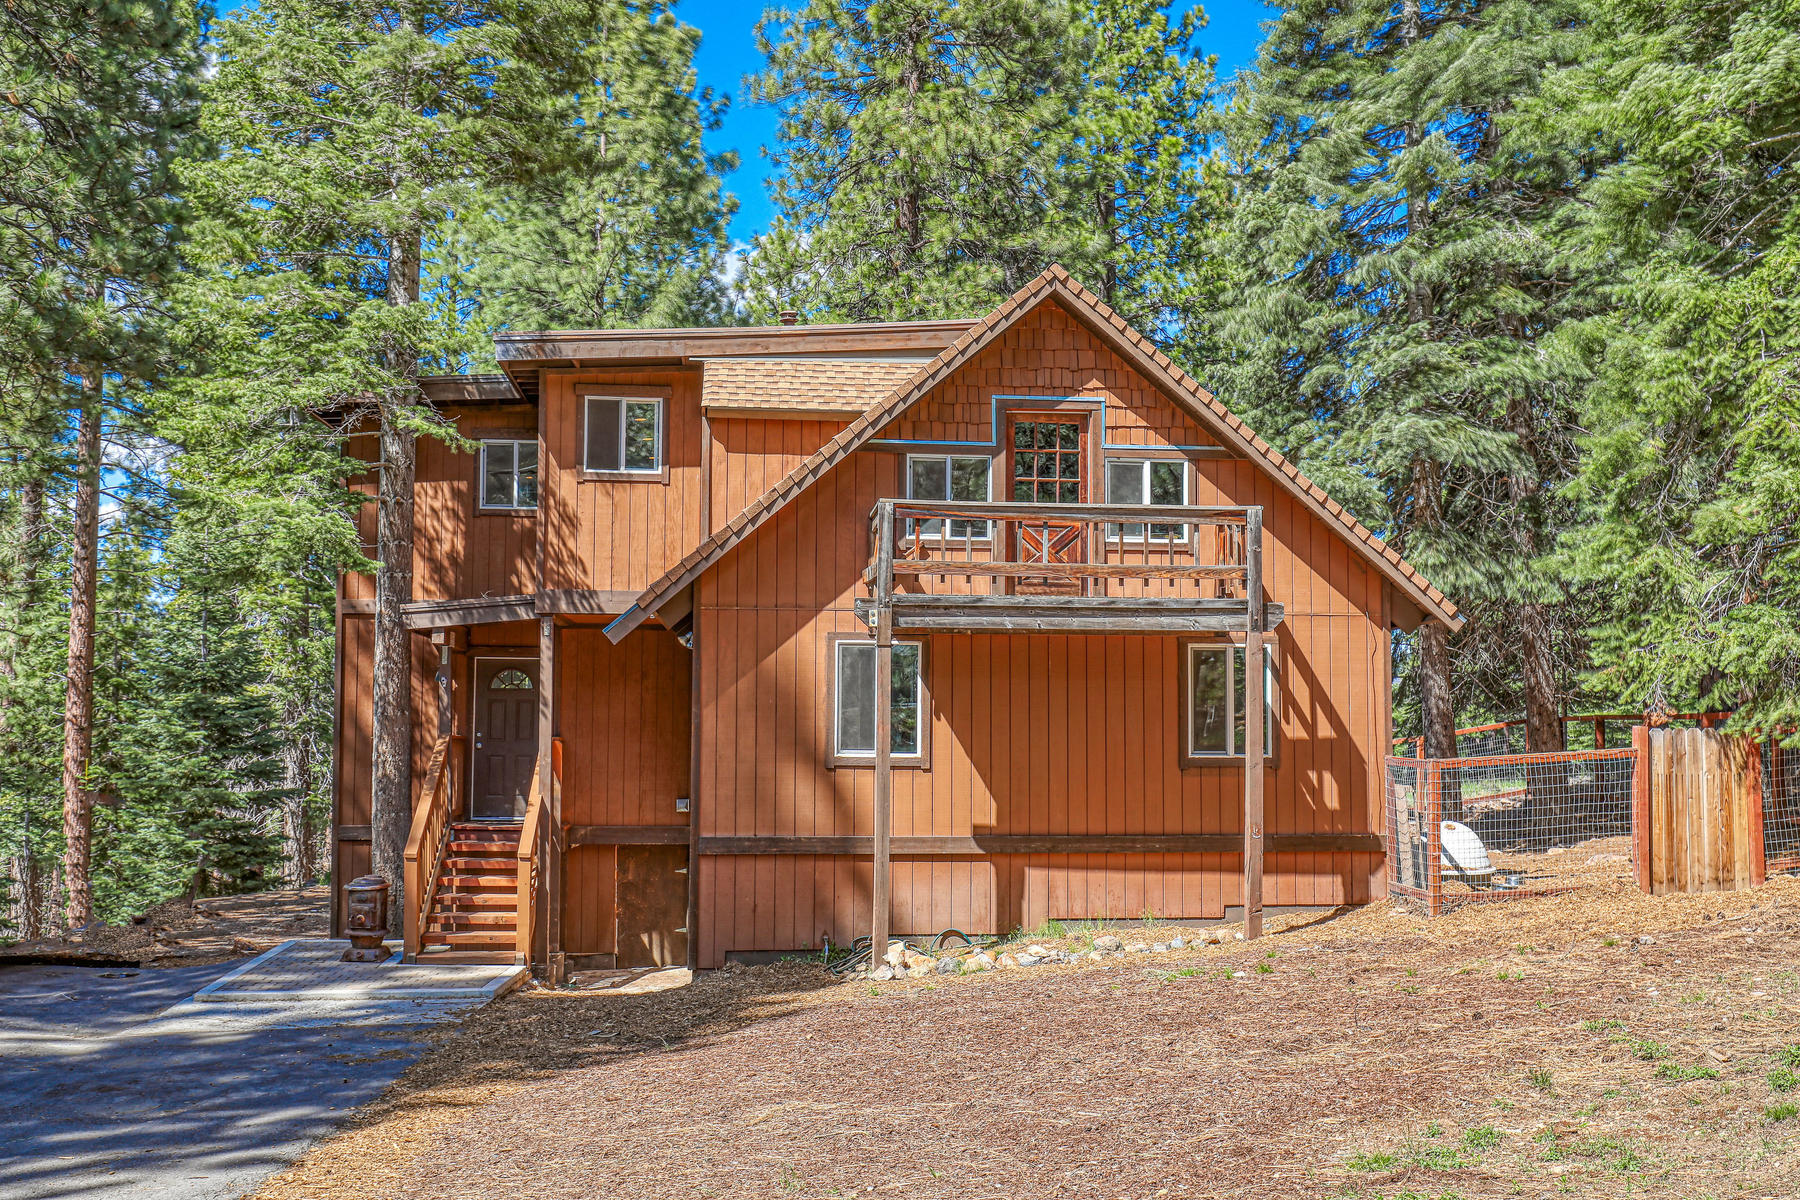 Single Family Homes for Active at Glenshire Gem 15062 Donnington Lane Truckee, California 96161 United States